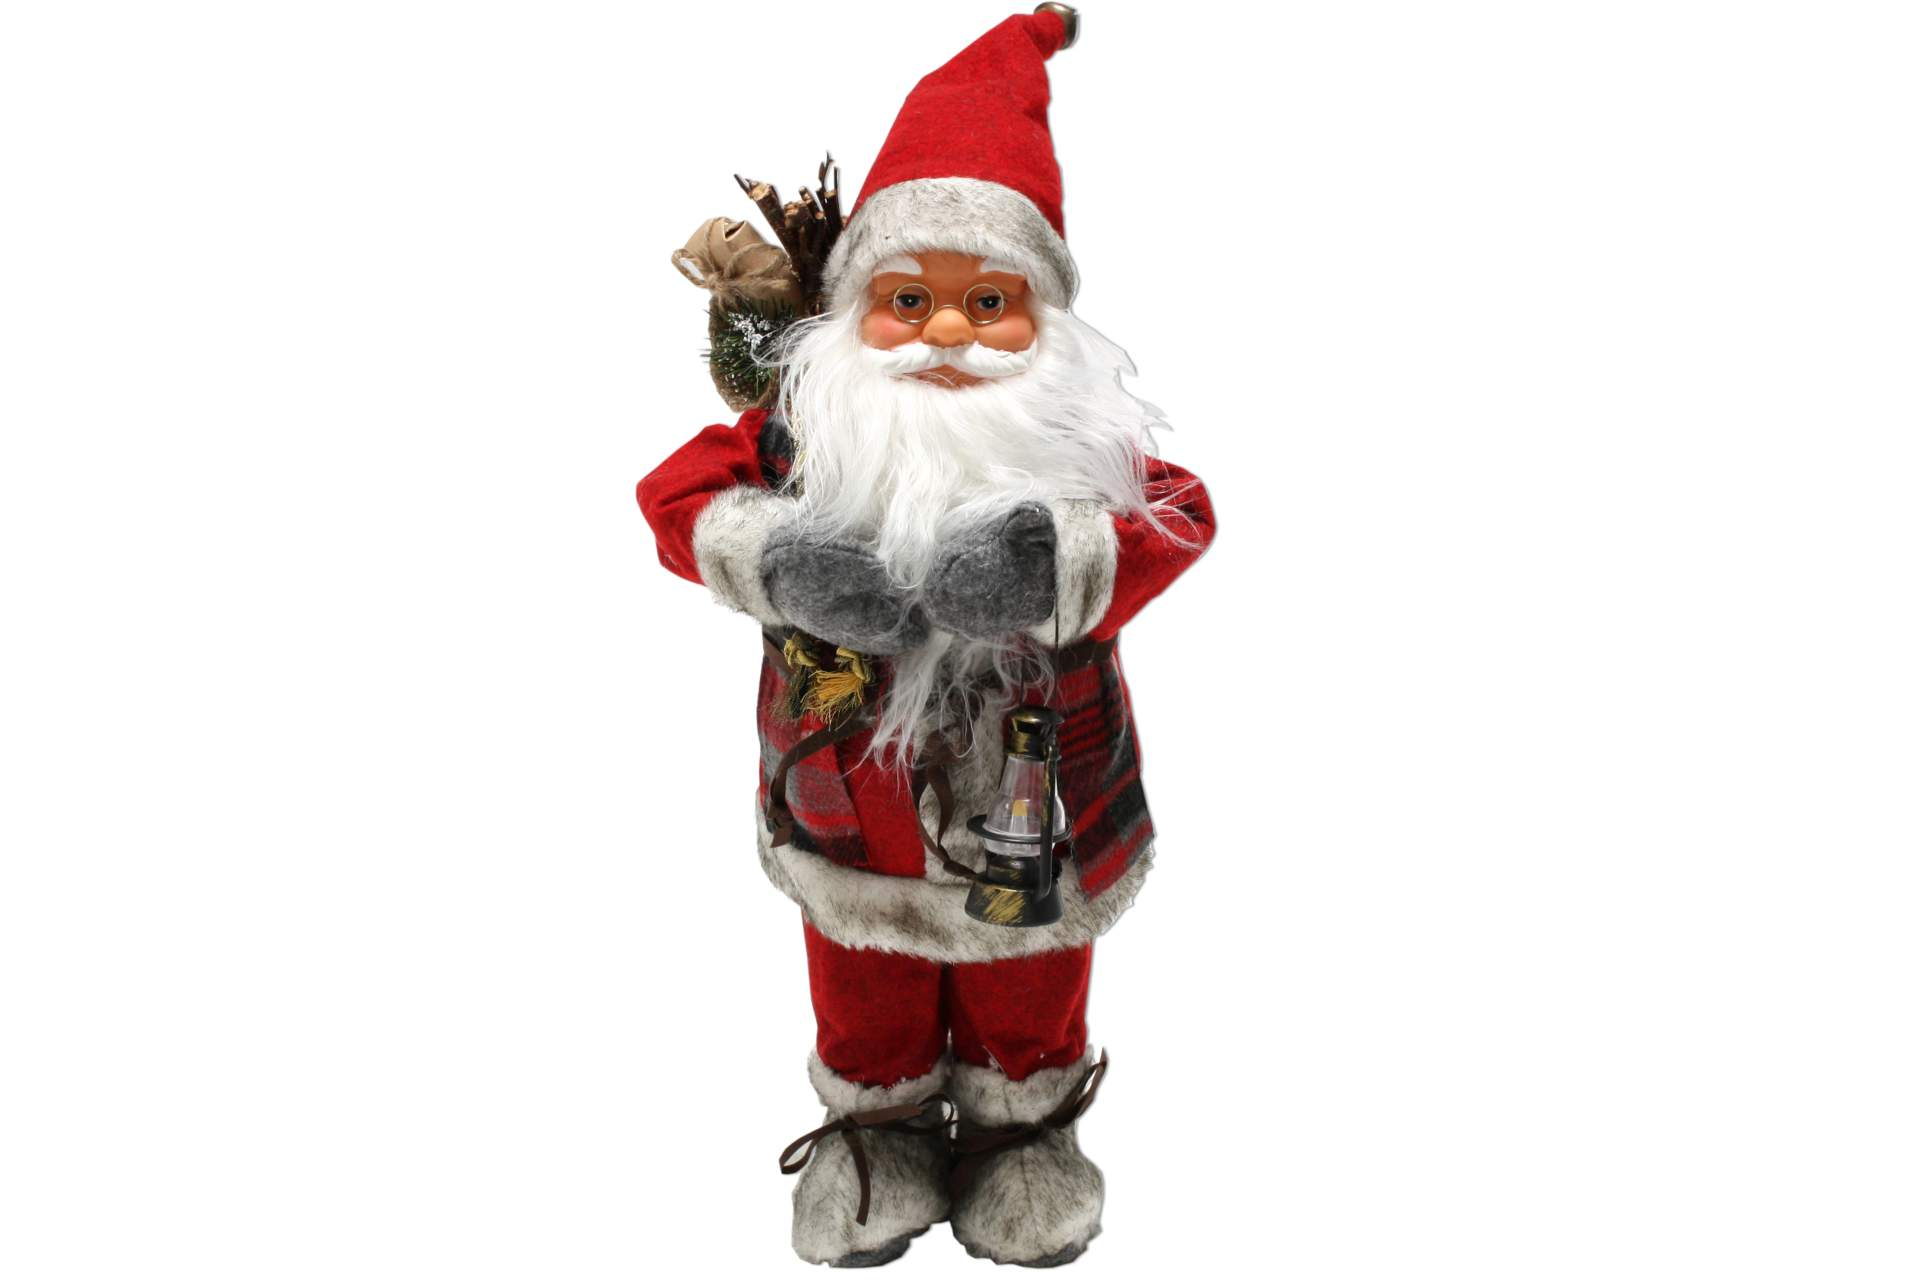 weihnachtsmann 40 cm nordisch rot mit laterne santa claus nikolaus deko figur ebay. Black Bedroom Furniture Sets. Home Design Ideas